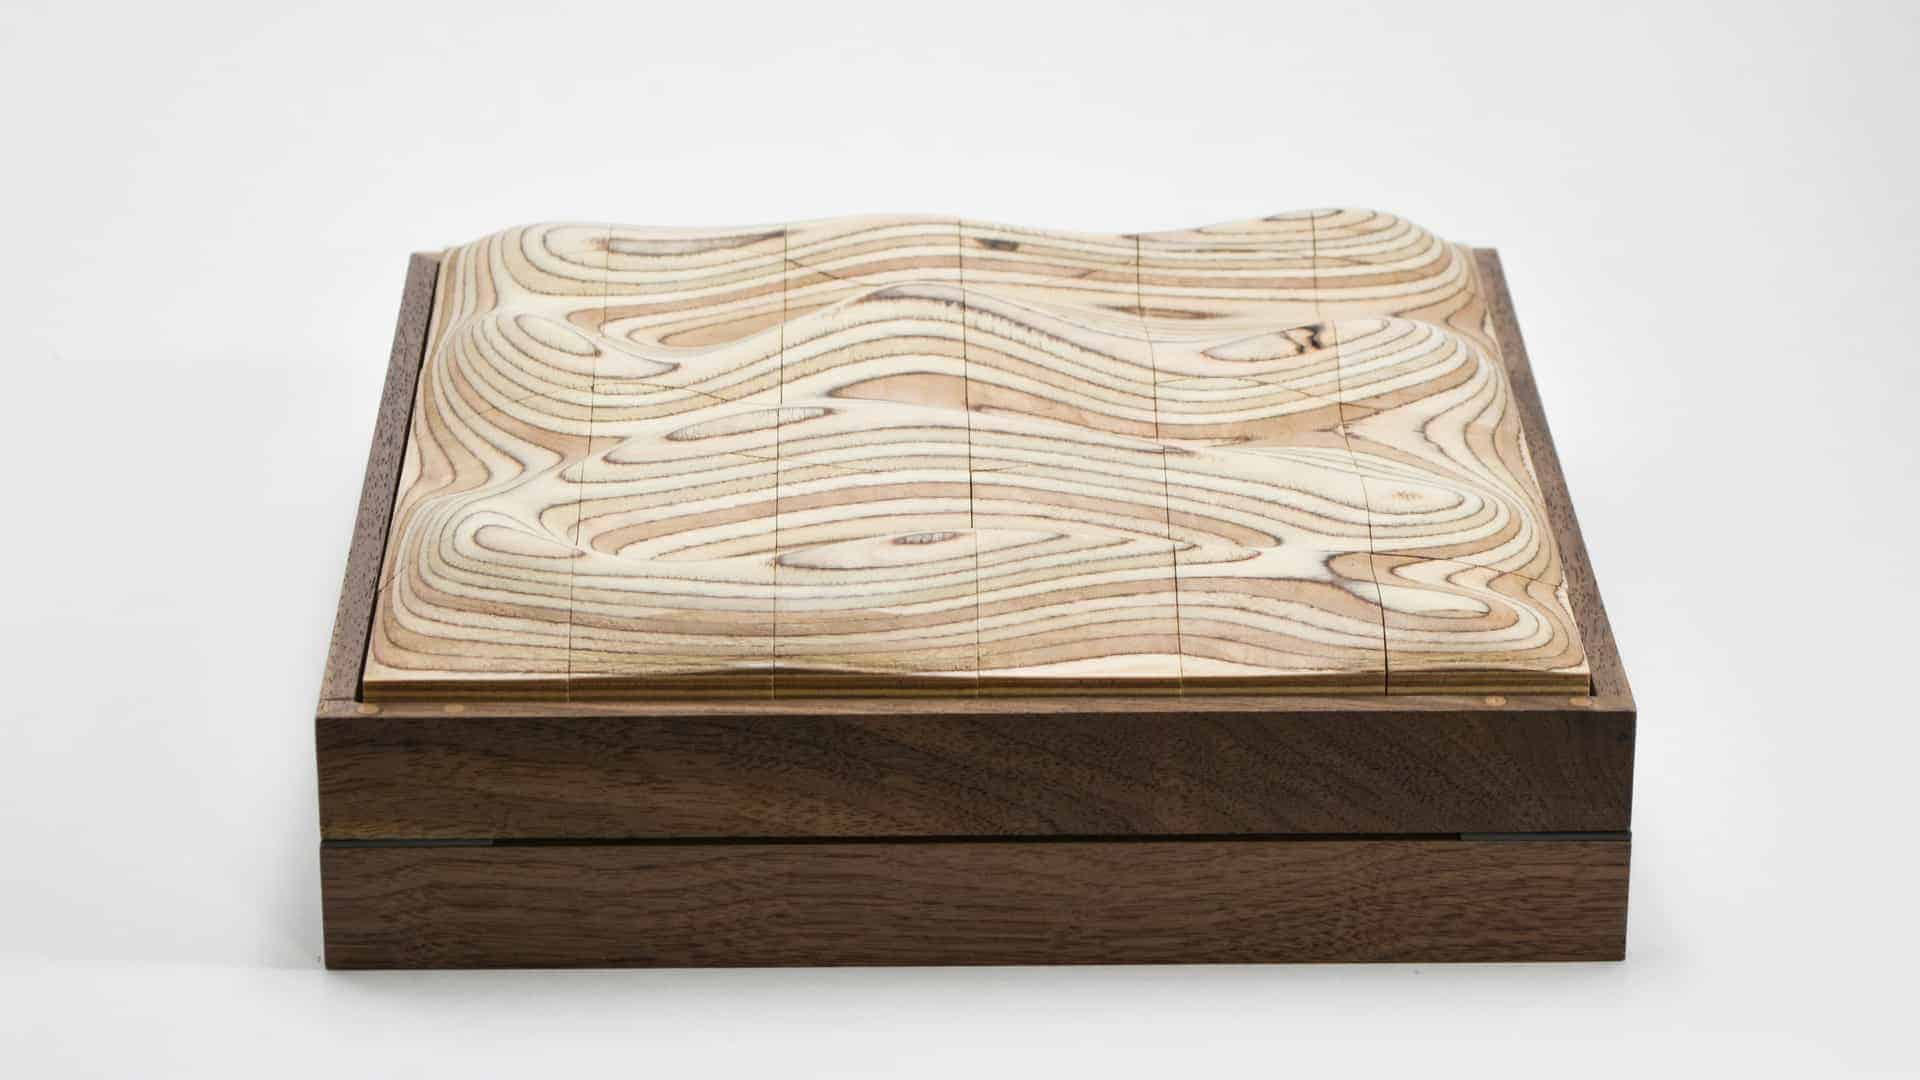 Strata | A sculptural wooden surface puzzle - Design Ideas